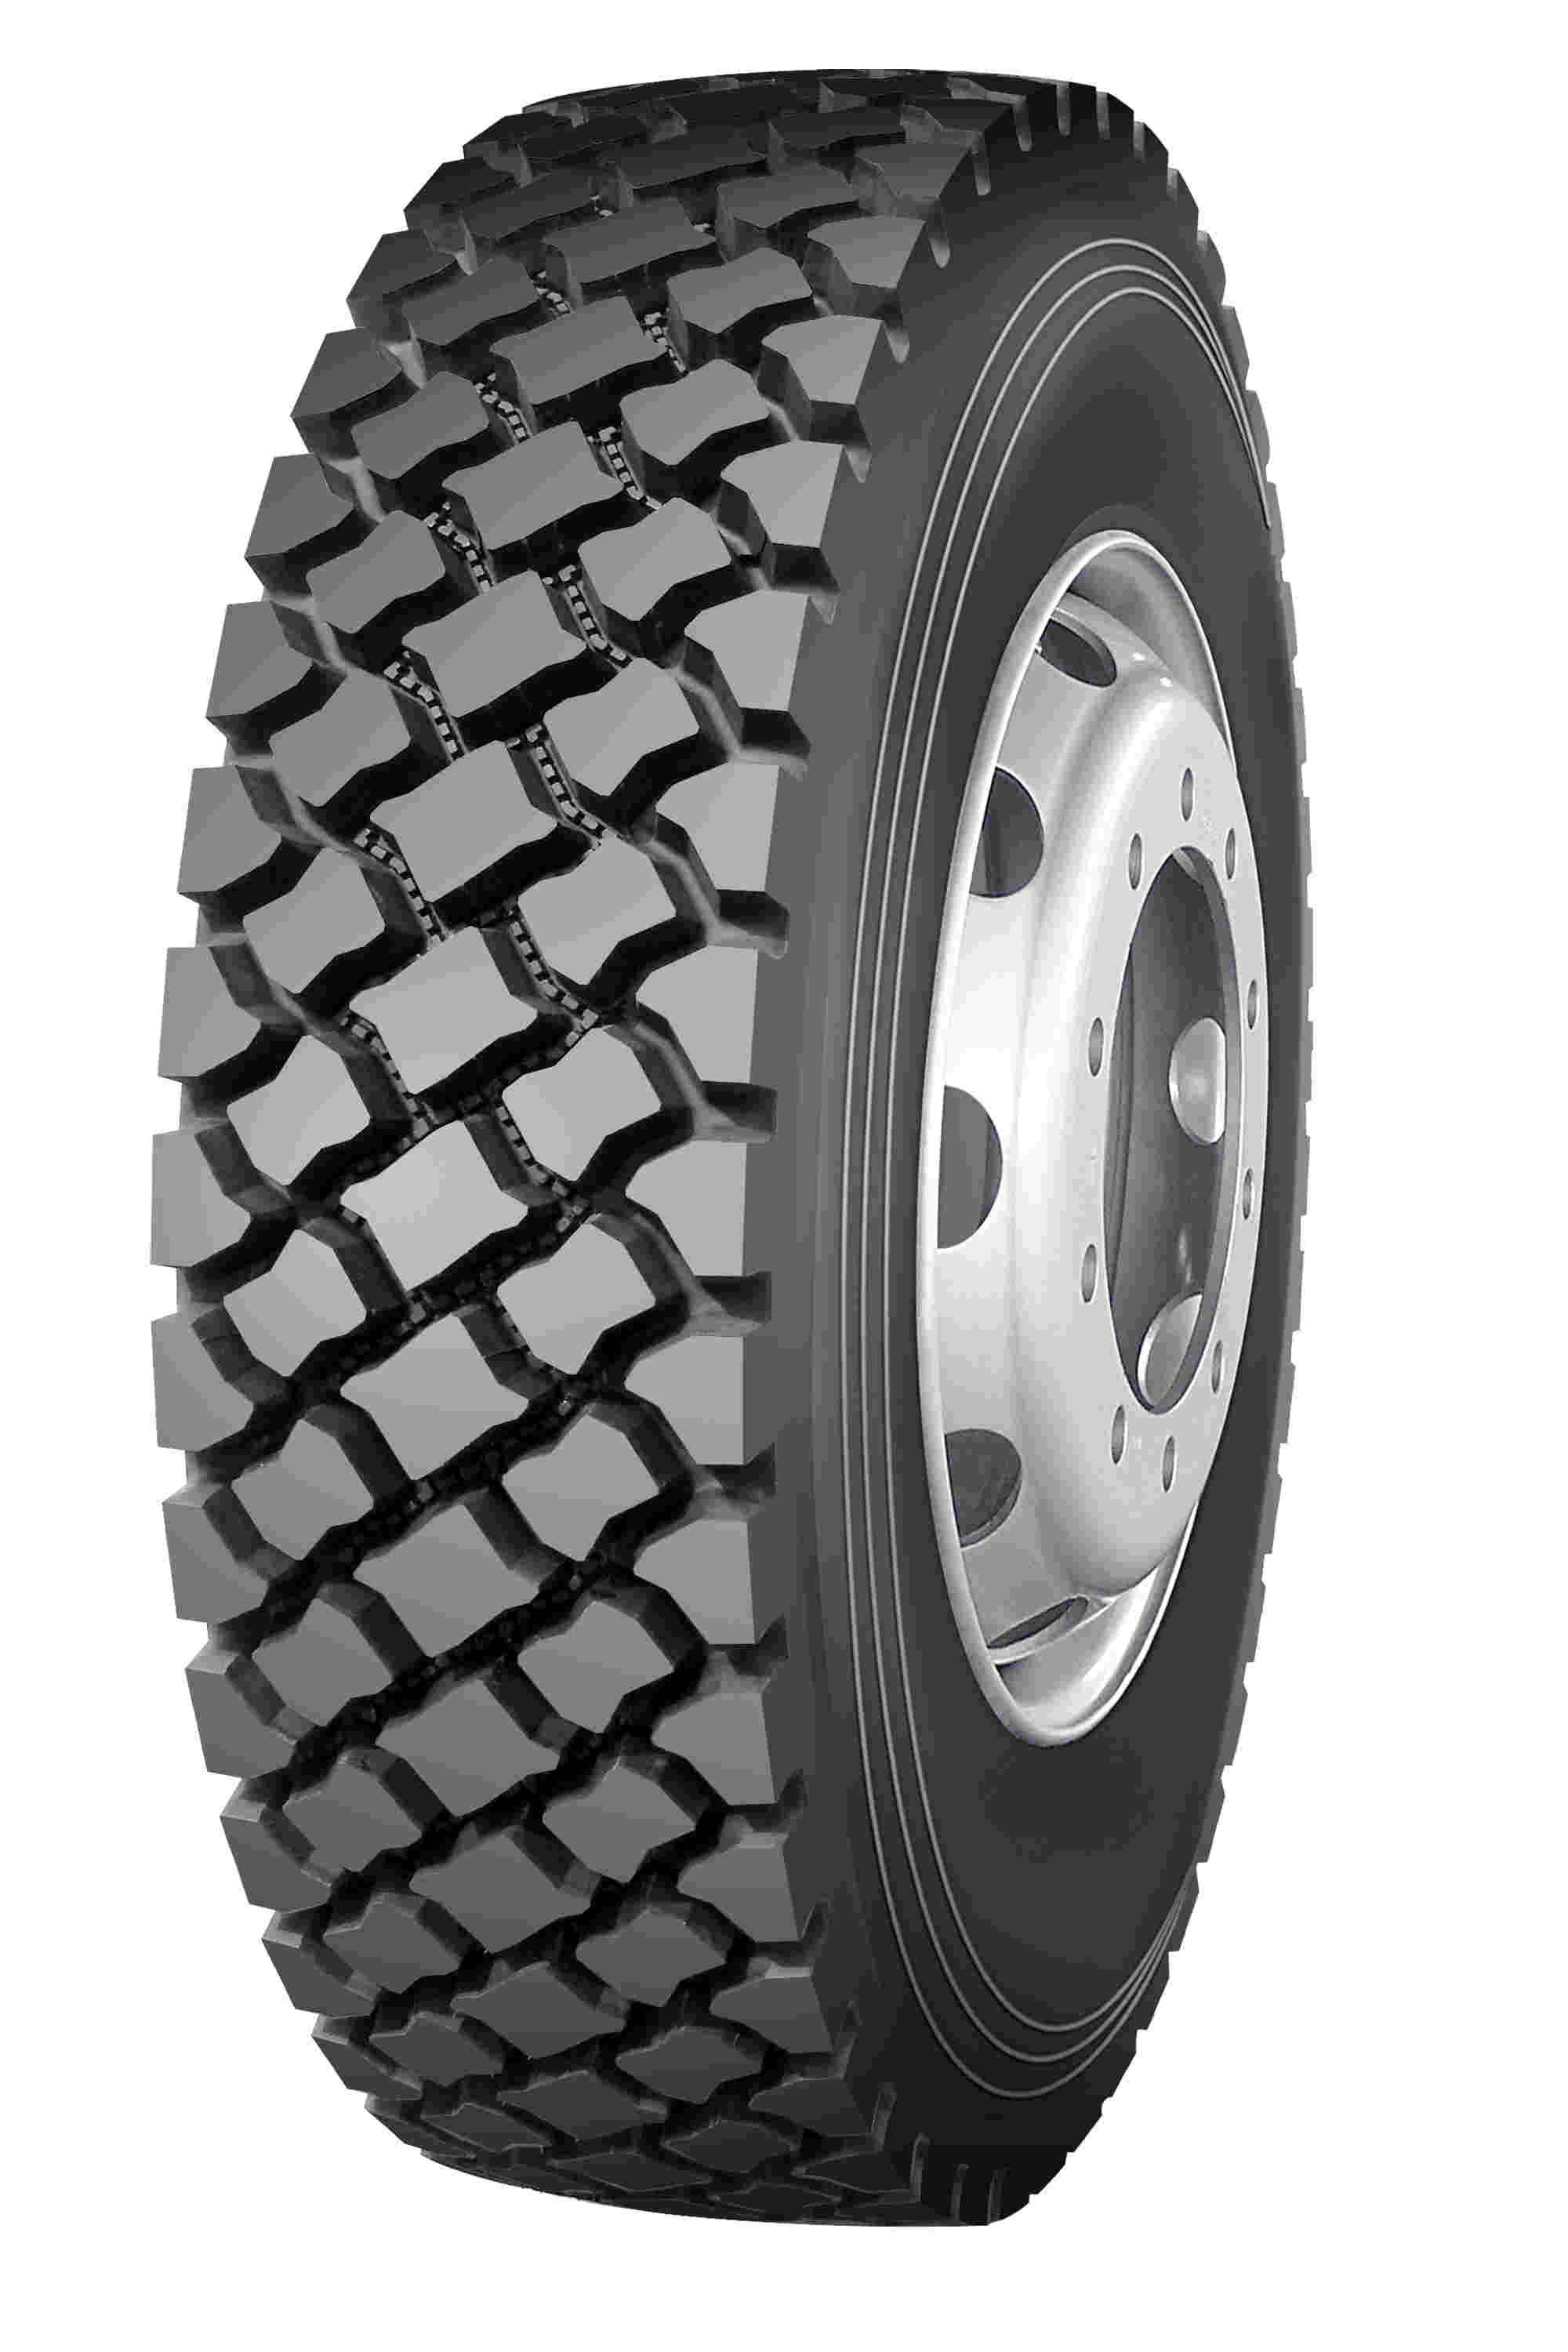 wholesale cheap  tires Truck Tire 11r22.5 11r24.5 285/75r24.5 295/75r22.5